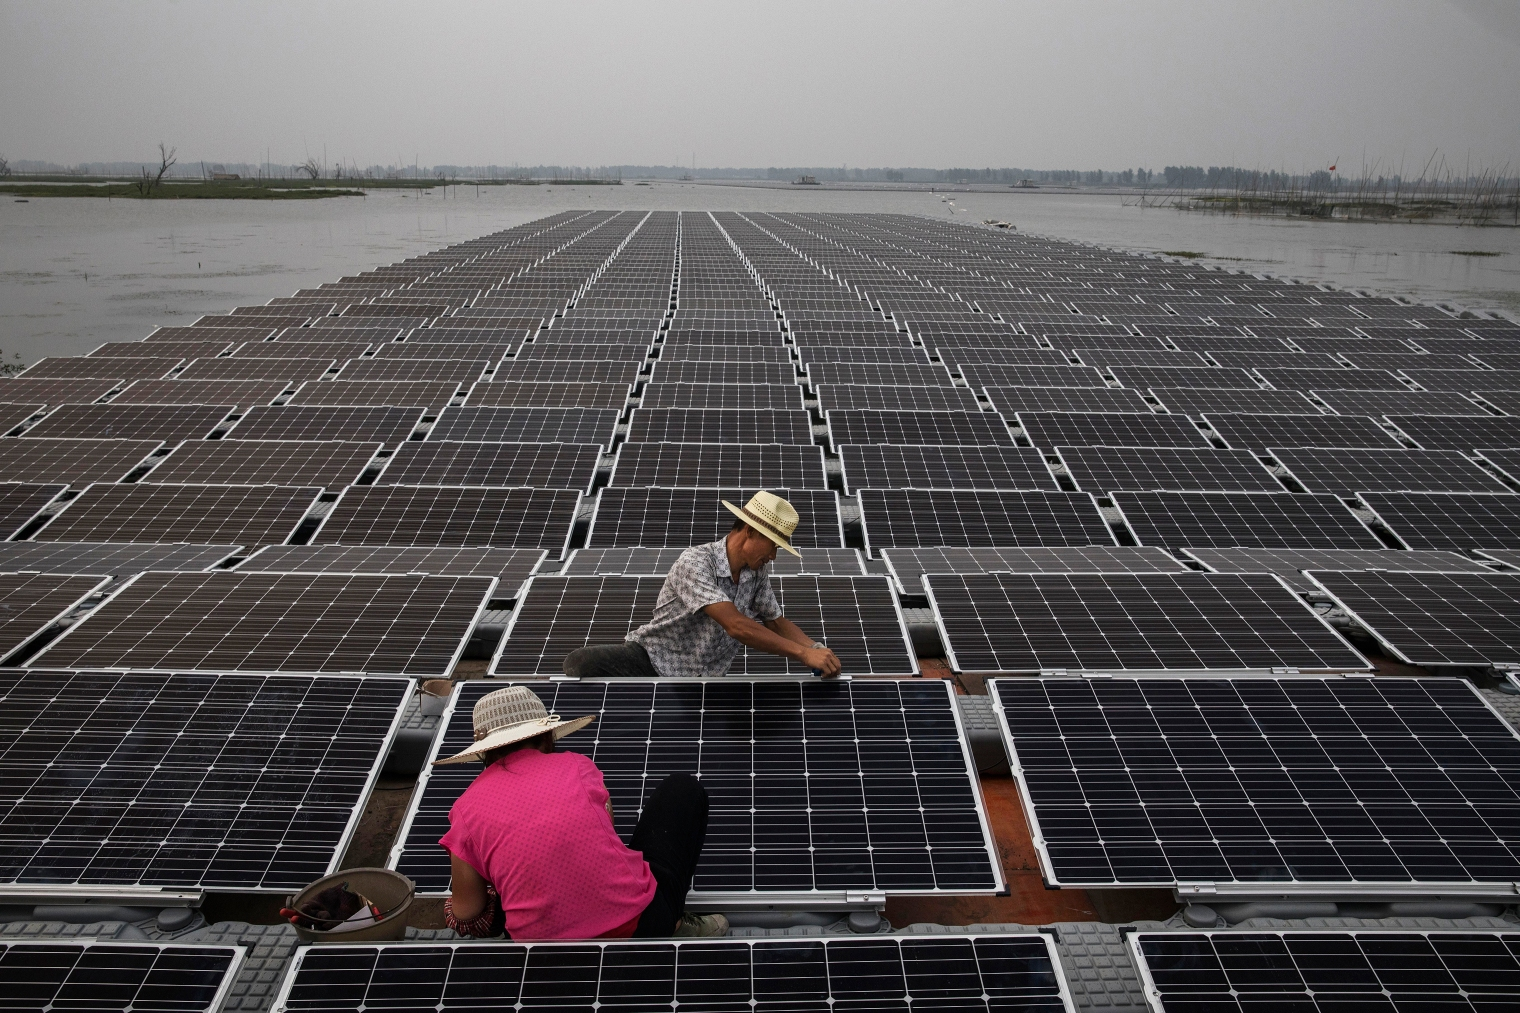 Workers prepare panels that will be part of a large floating solar farm project.